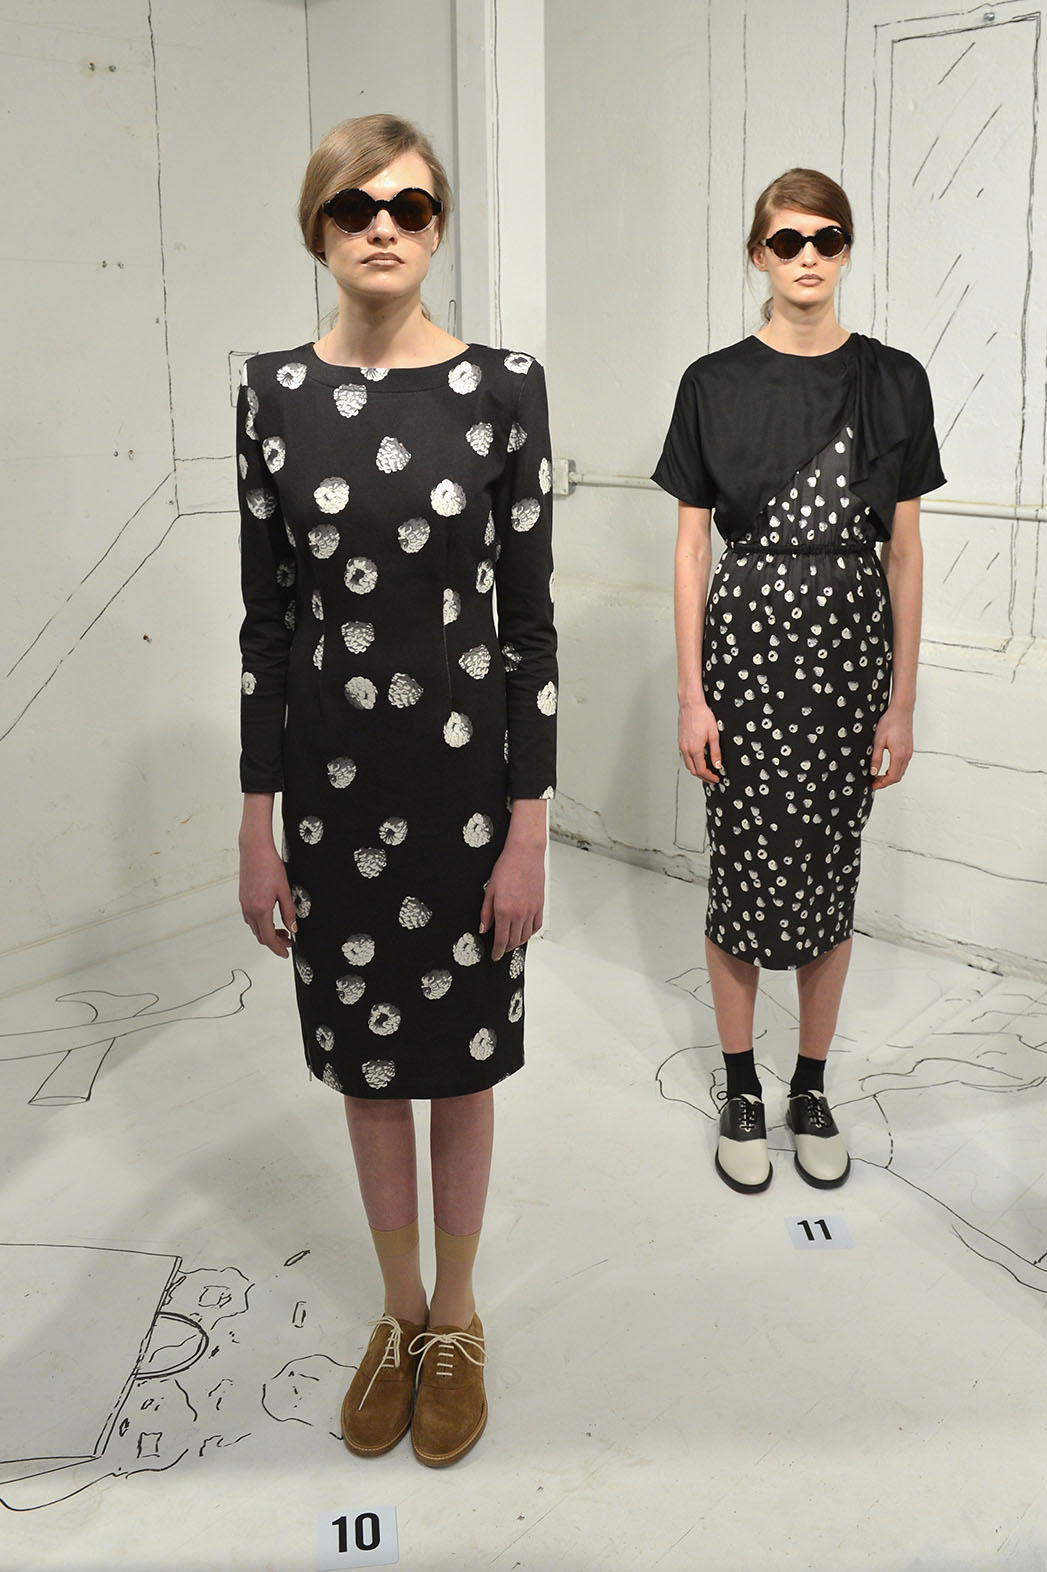 Band Of Outsiders Women's Presentation Mercedes-Benz Fashion Week Fall 2014 -H 2015